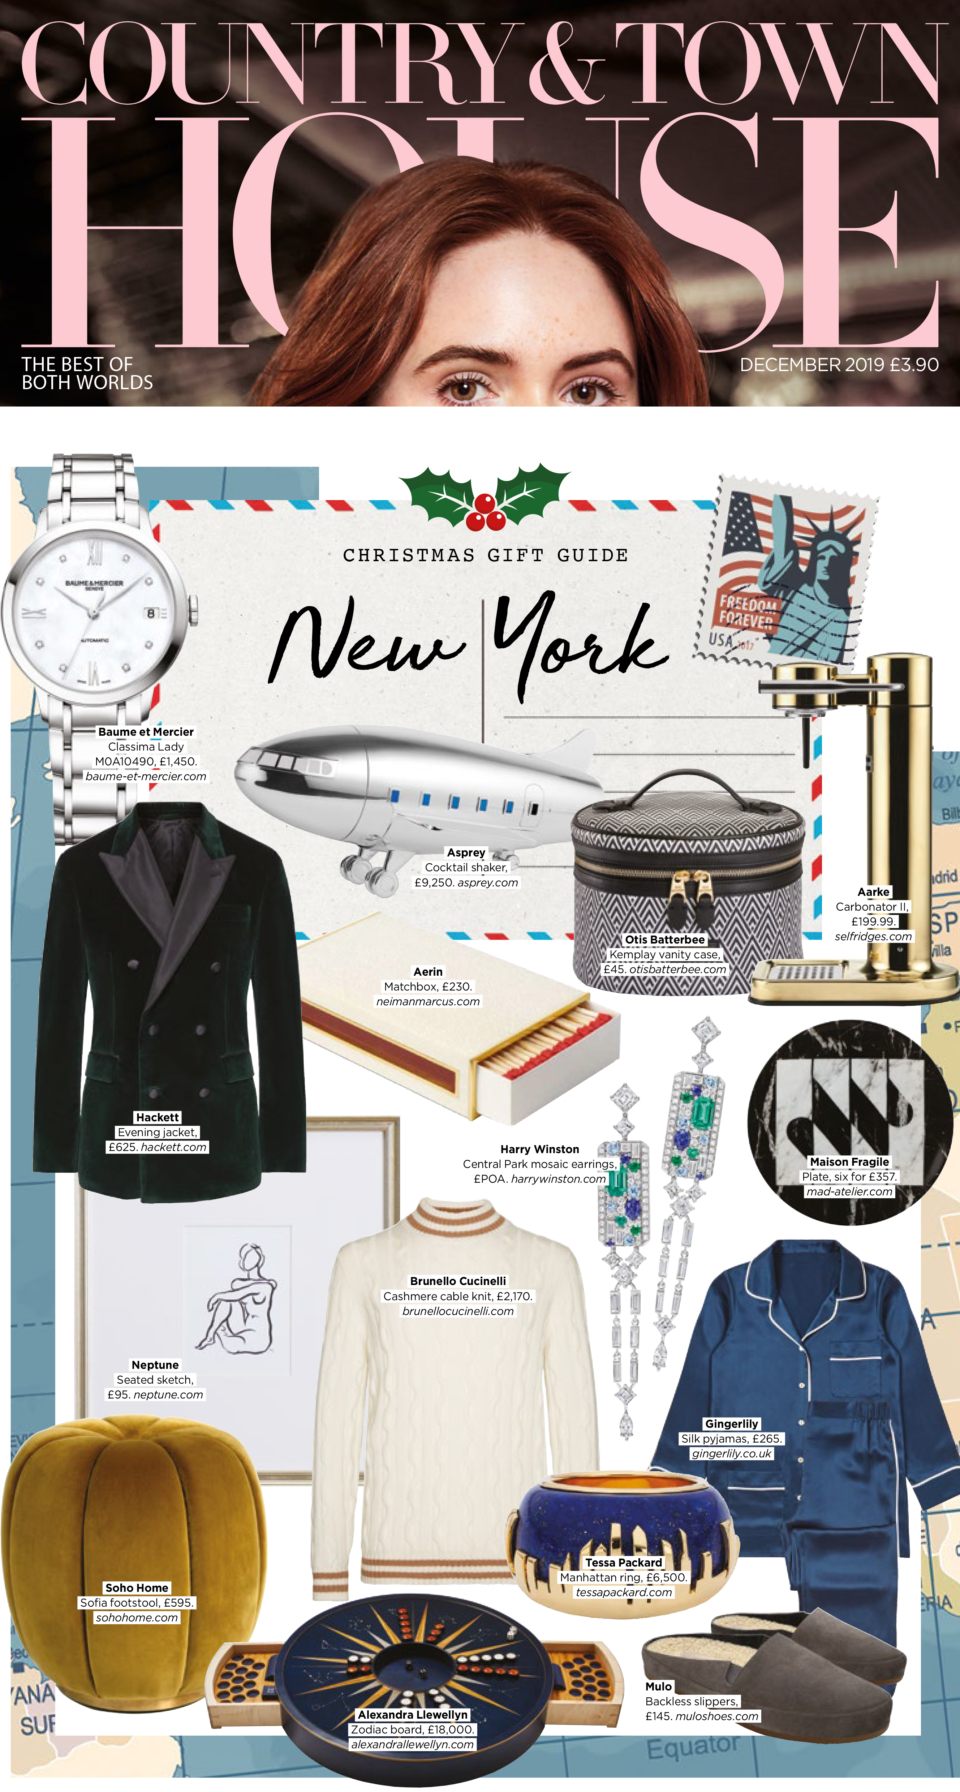 Country and Town House Magazine Christmas Gift Guide featuring Tessa Packard London Contemporary Fine Jewellery gold and lapis lazuli cocktail ring